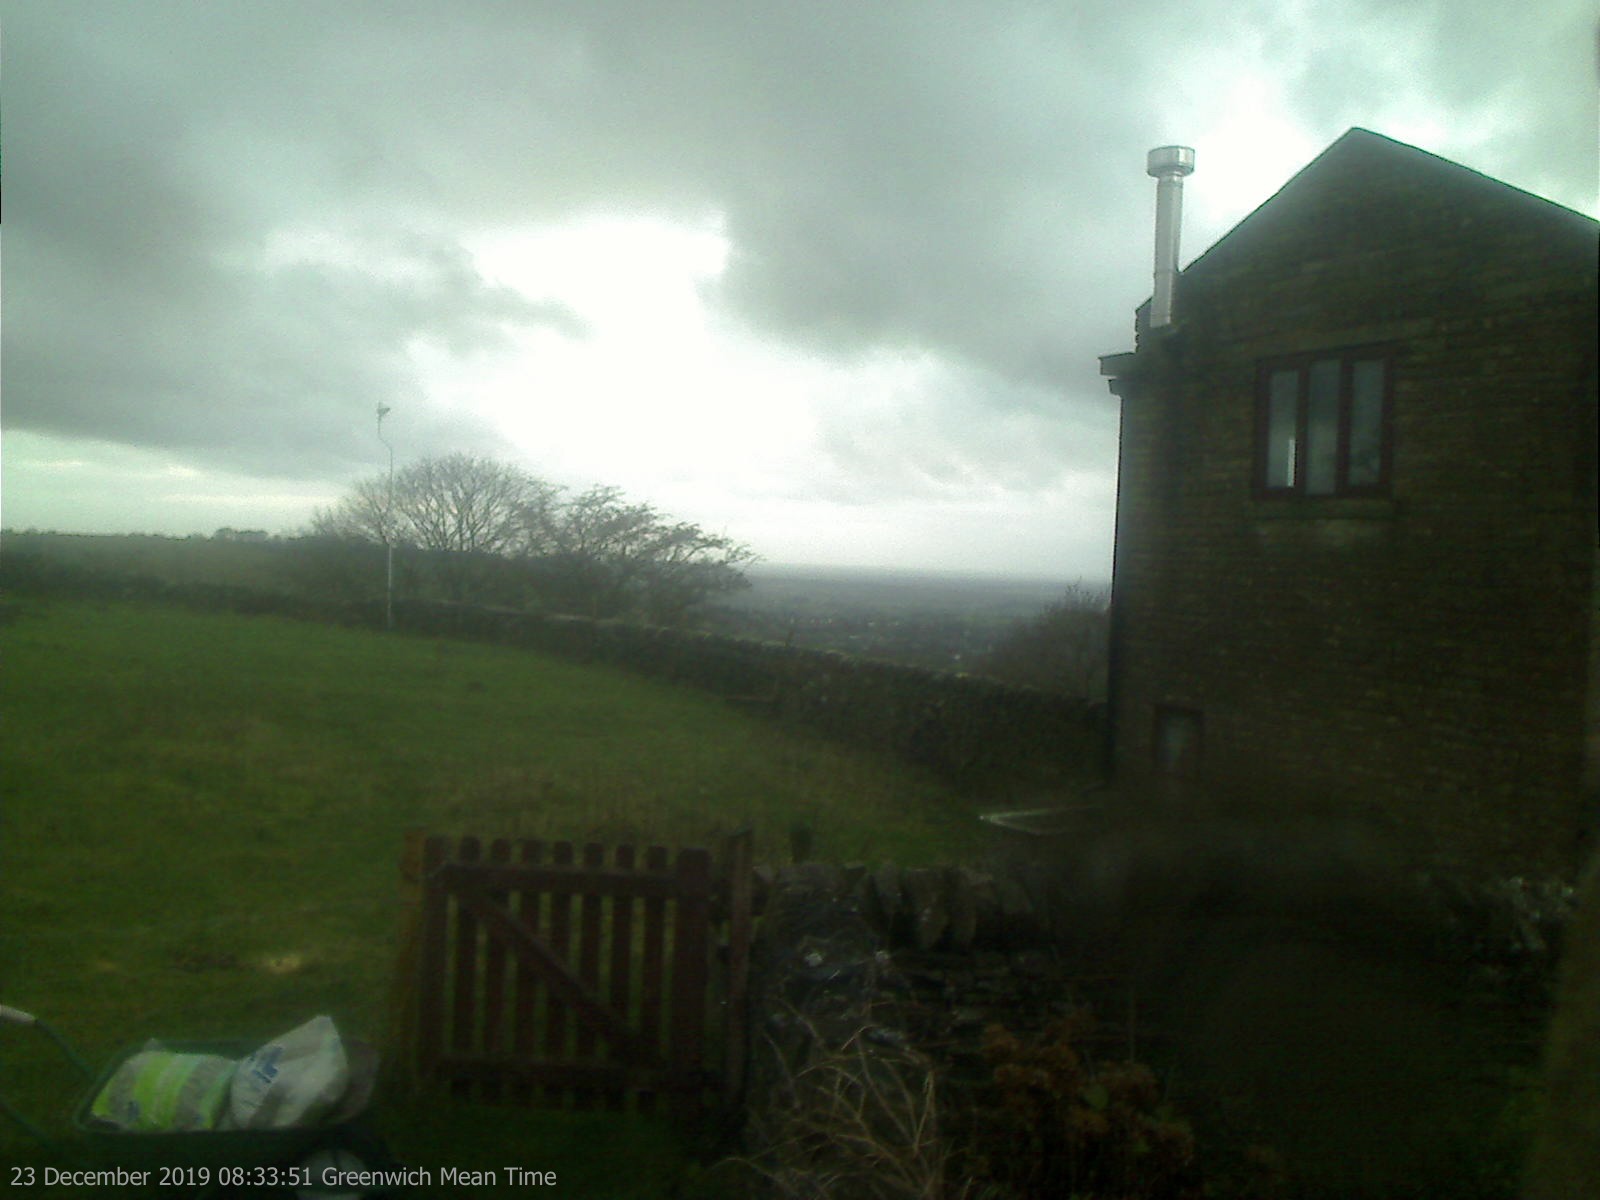 Peak District Webcams - Rainow Webcam